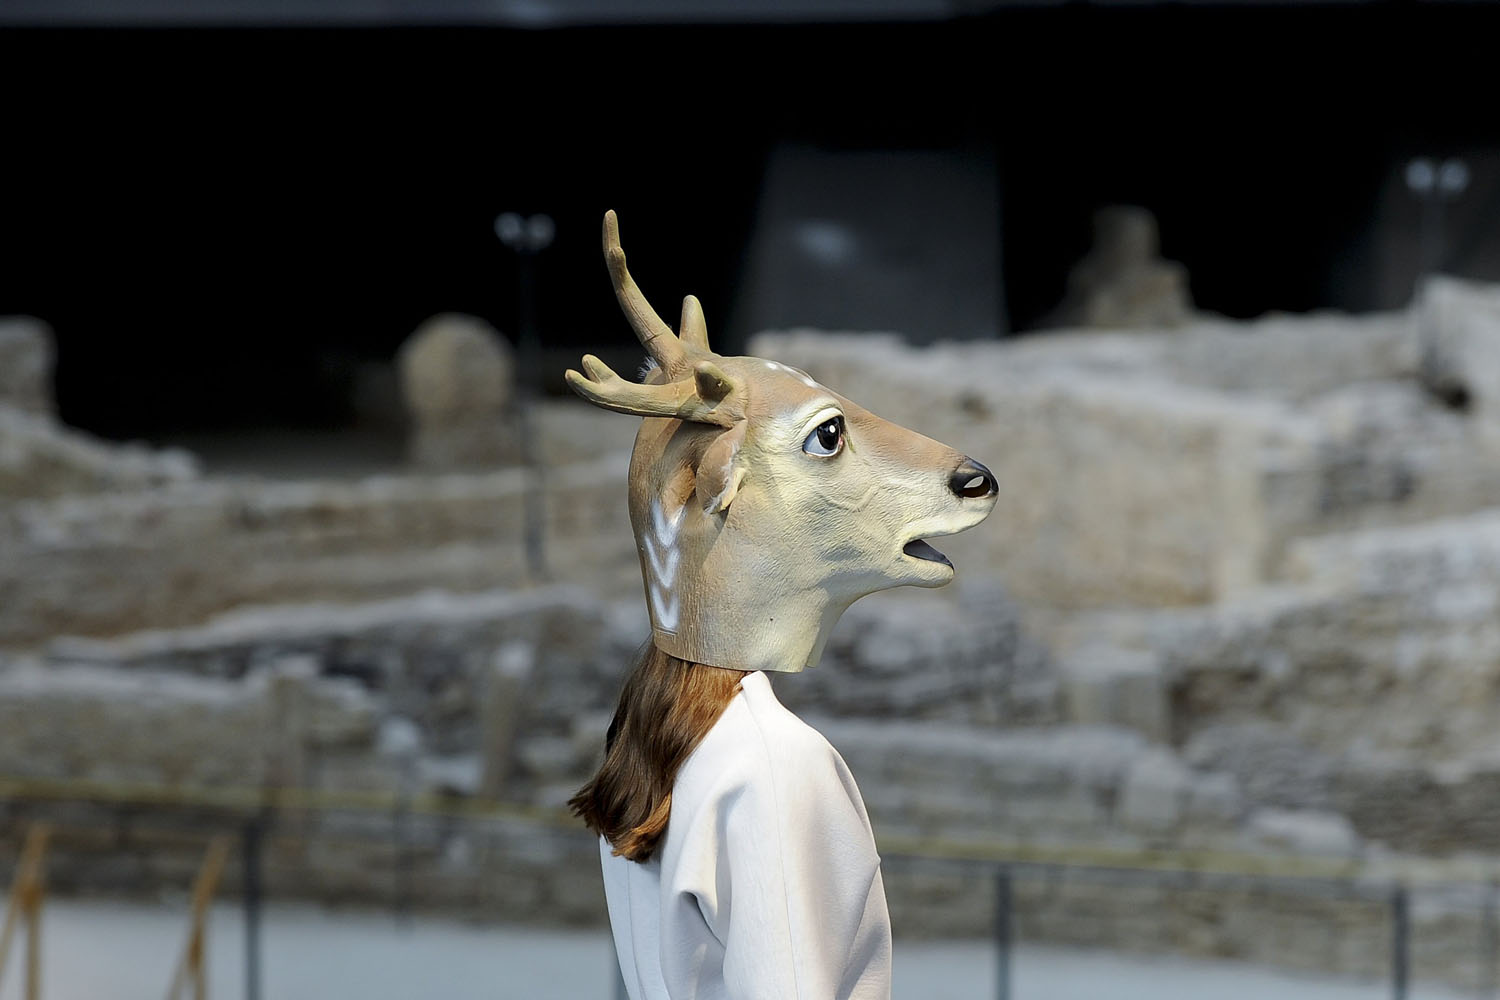 A model presents a creation by Txell Miras during the Autumn-Winter 2014-2015 fashion week in Barcelona on Jan. 29, 2014.